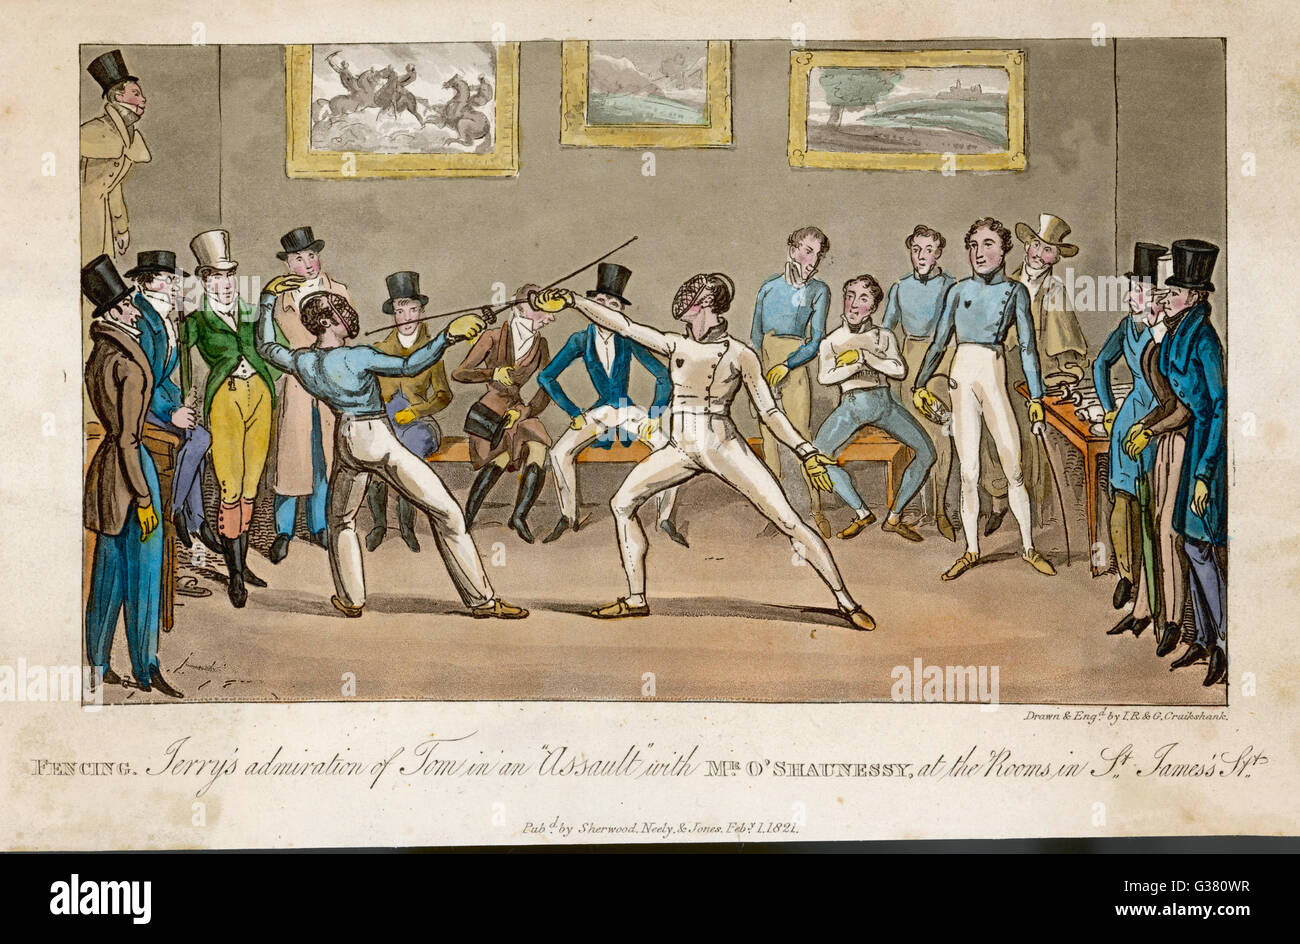 Fencing at the St James' Street  Rooms         Date: 1821 - Stock Image